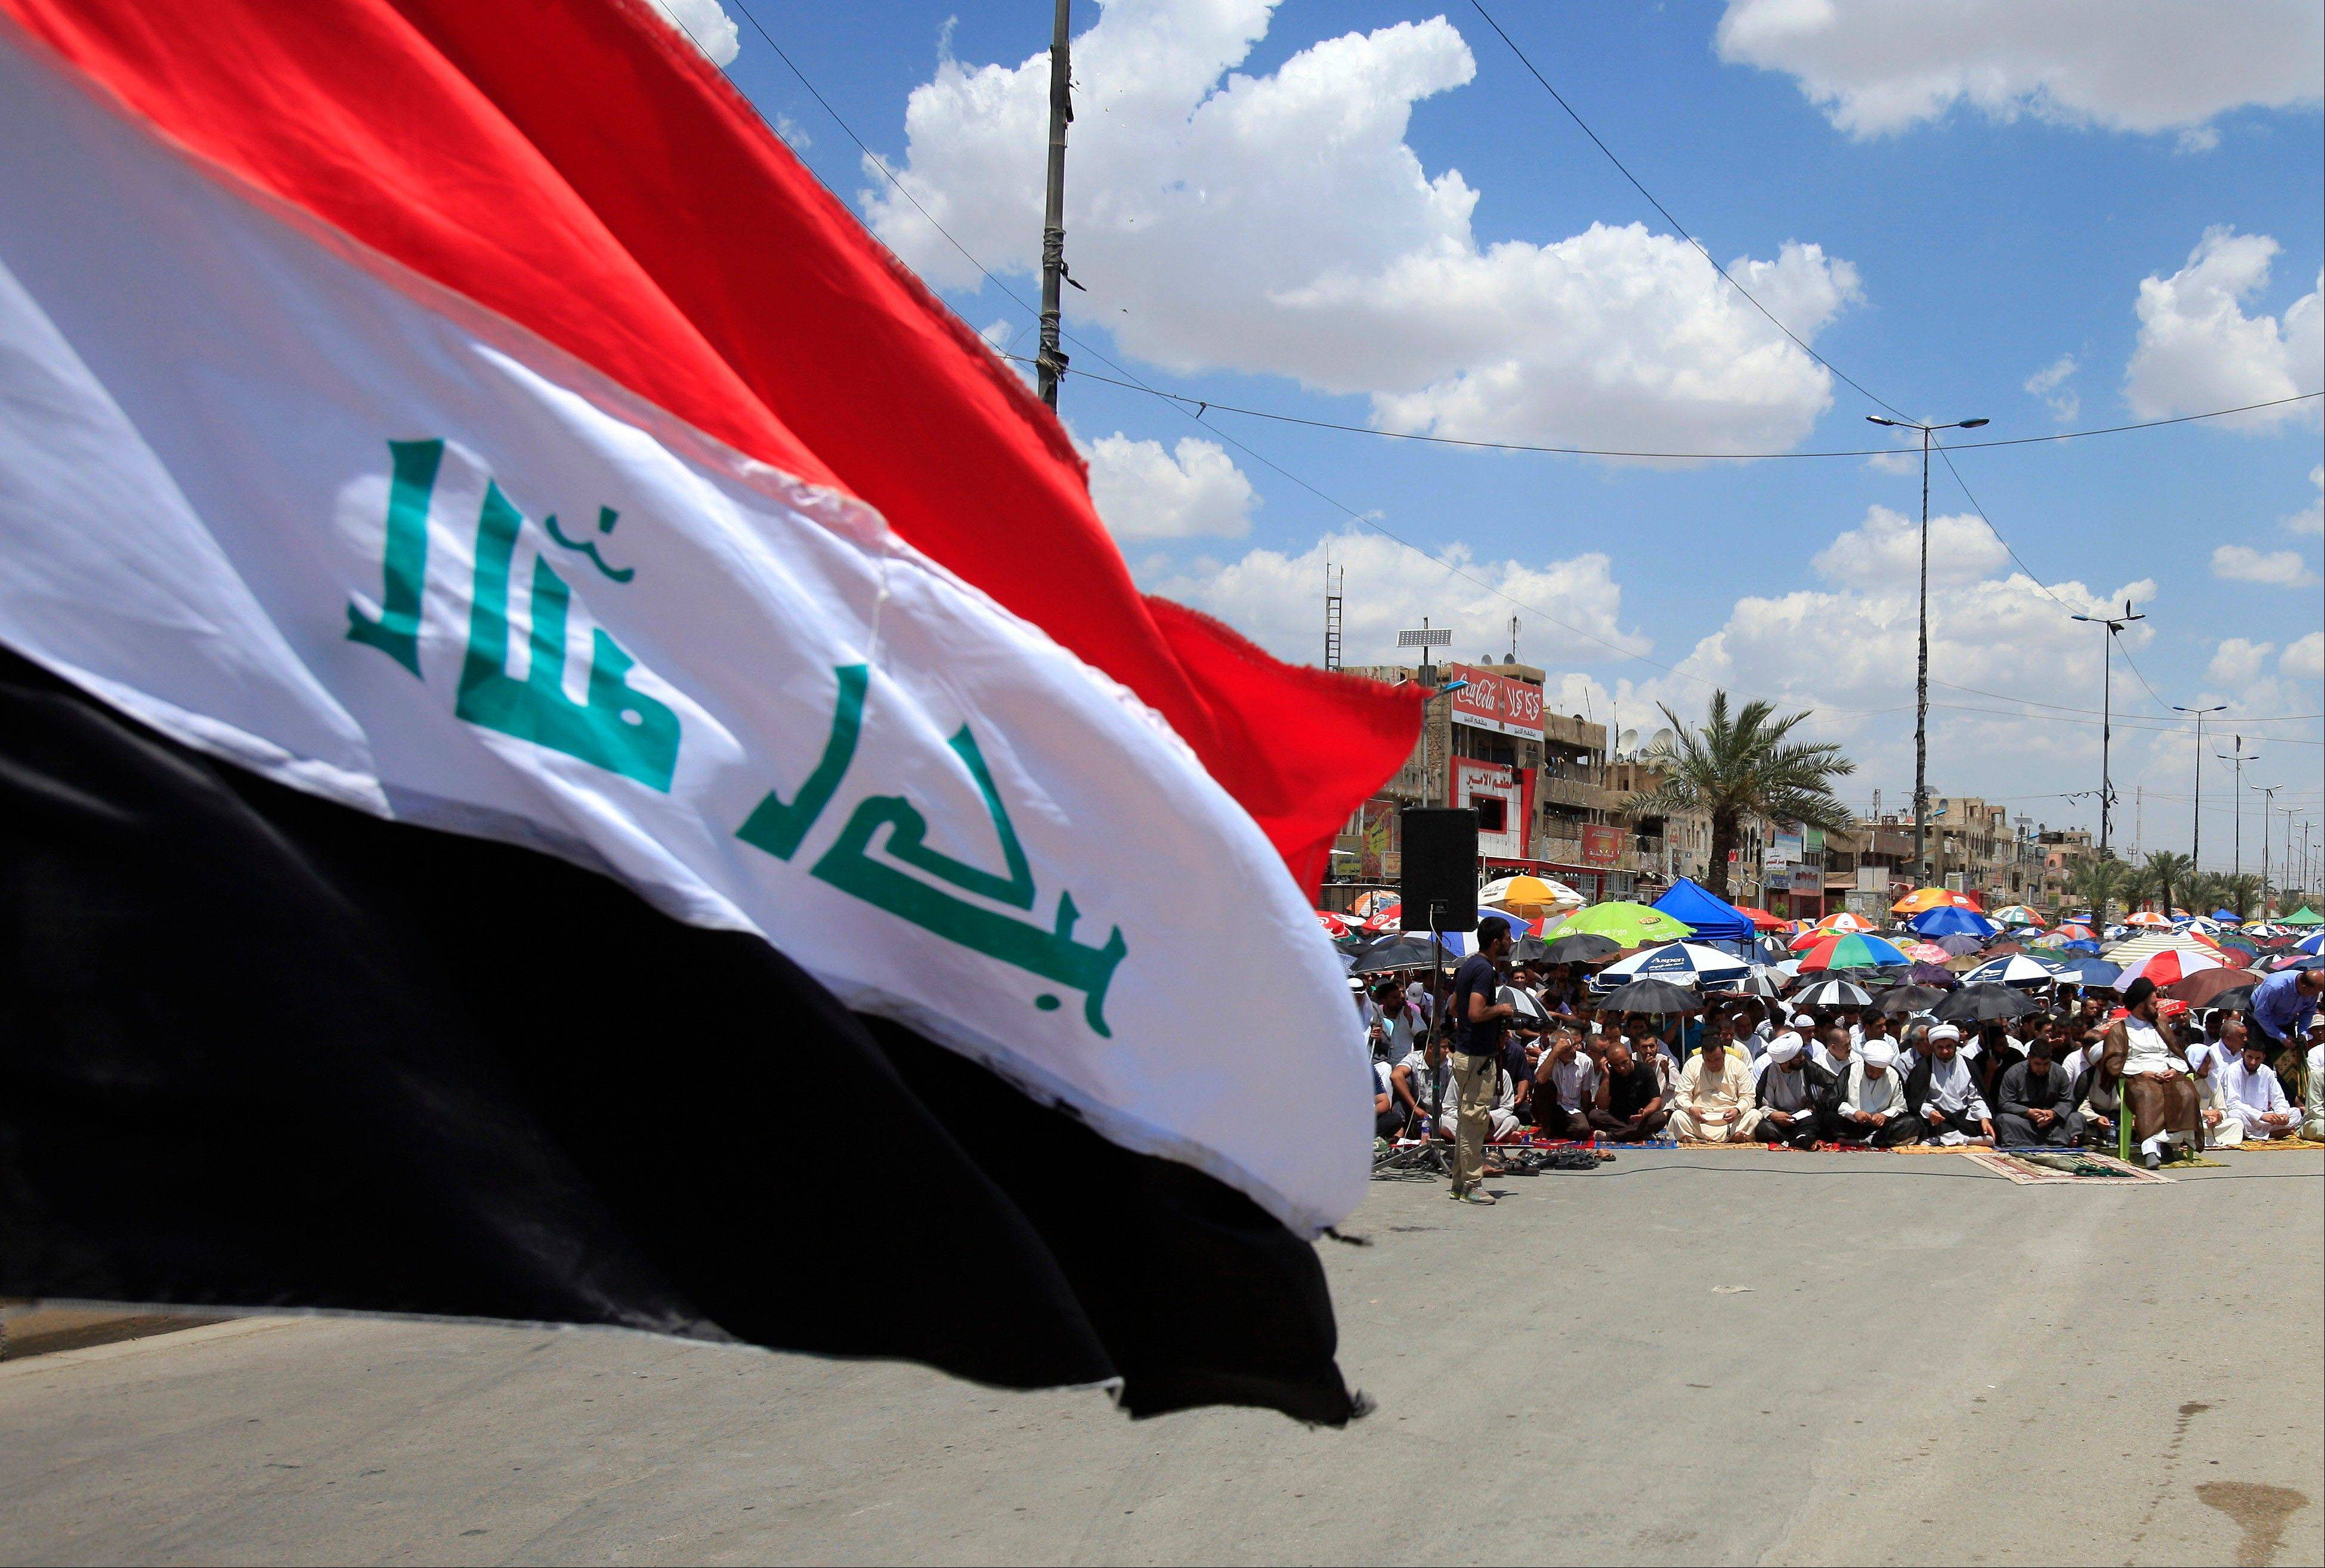 Iraq's national flag flies as followers of radical Shiite cleric Muqtada al-Sadr attend Friday prayers in the Sadr City neighborhood in Baghdad.